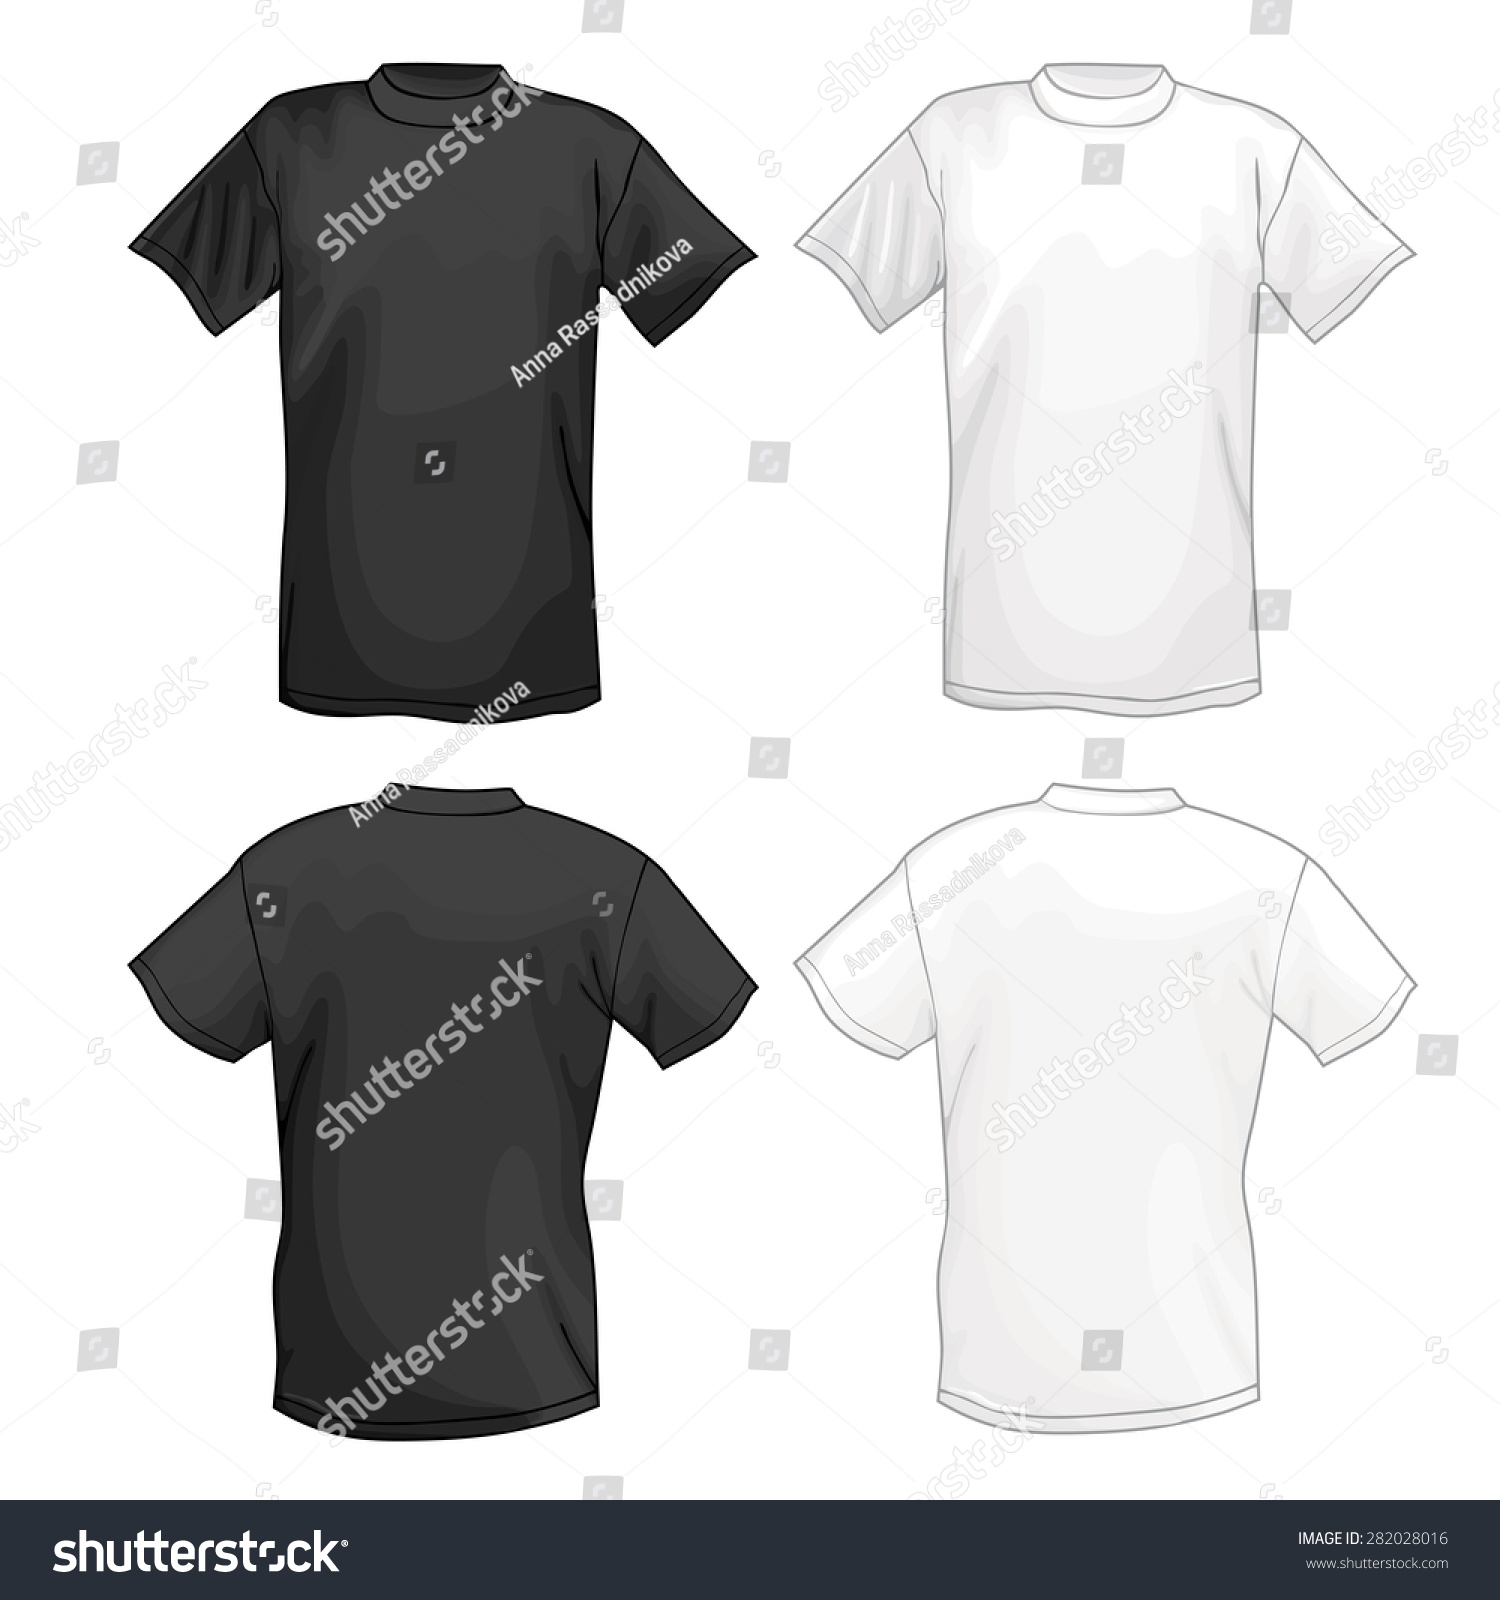 Black t shirt design template - White And Black Vector T Shirt Design Template Front Back Vector